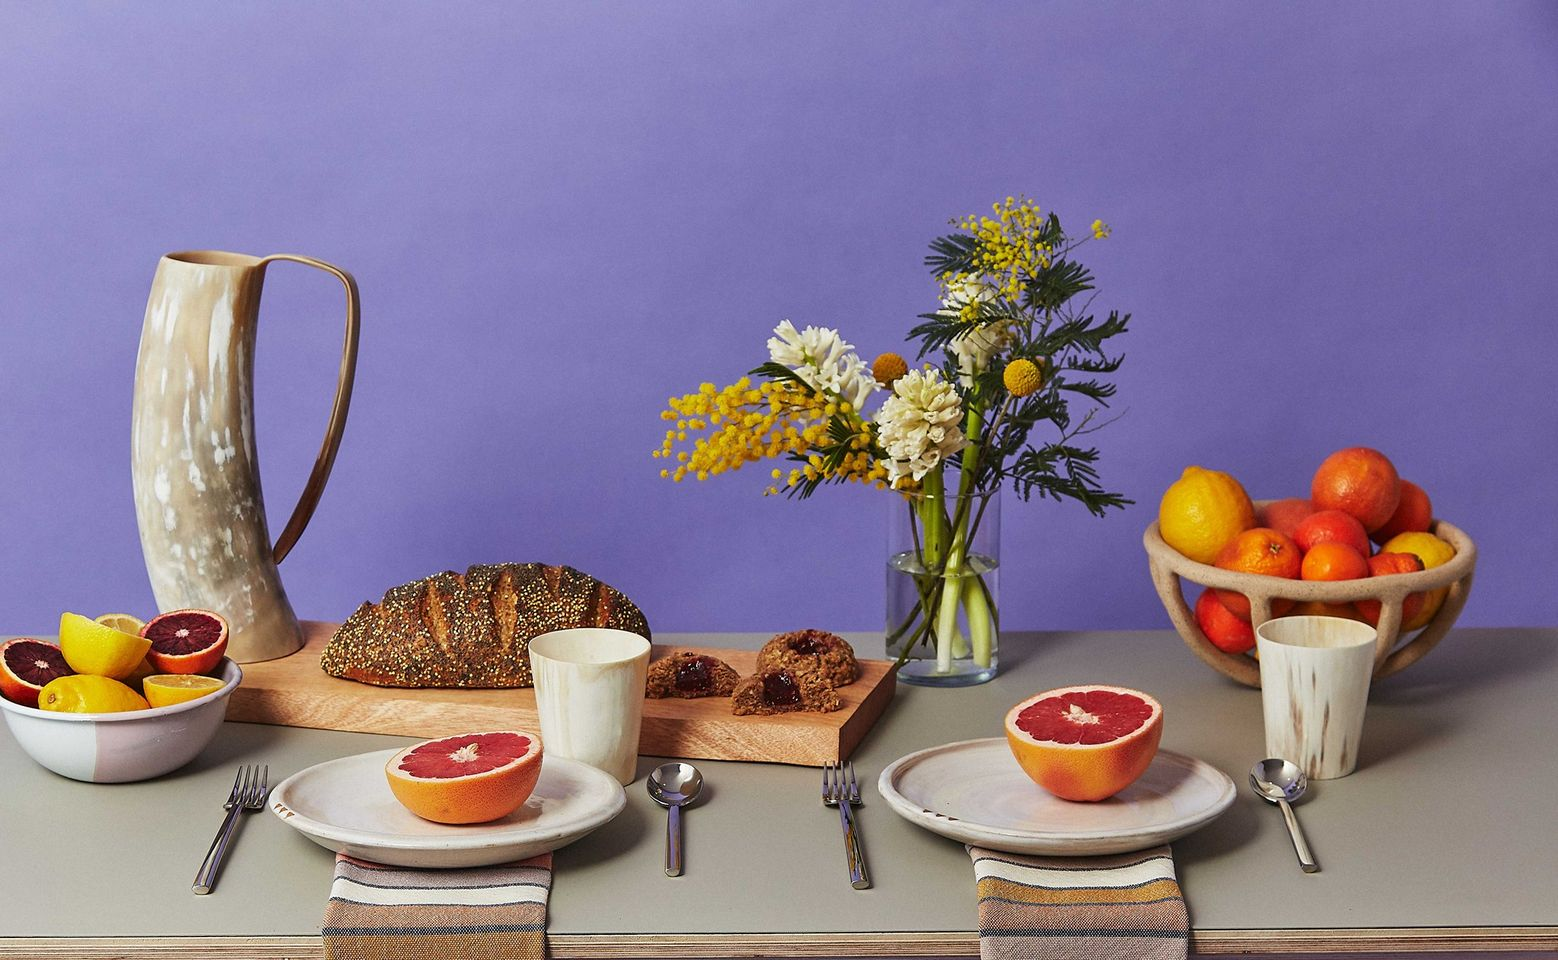 Sustainable furniture & home decor: Table arrangement including ruby red grapefruit, flowers, dark brown bread, and a bowl of fruit